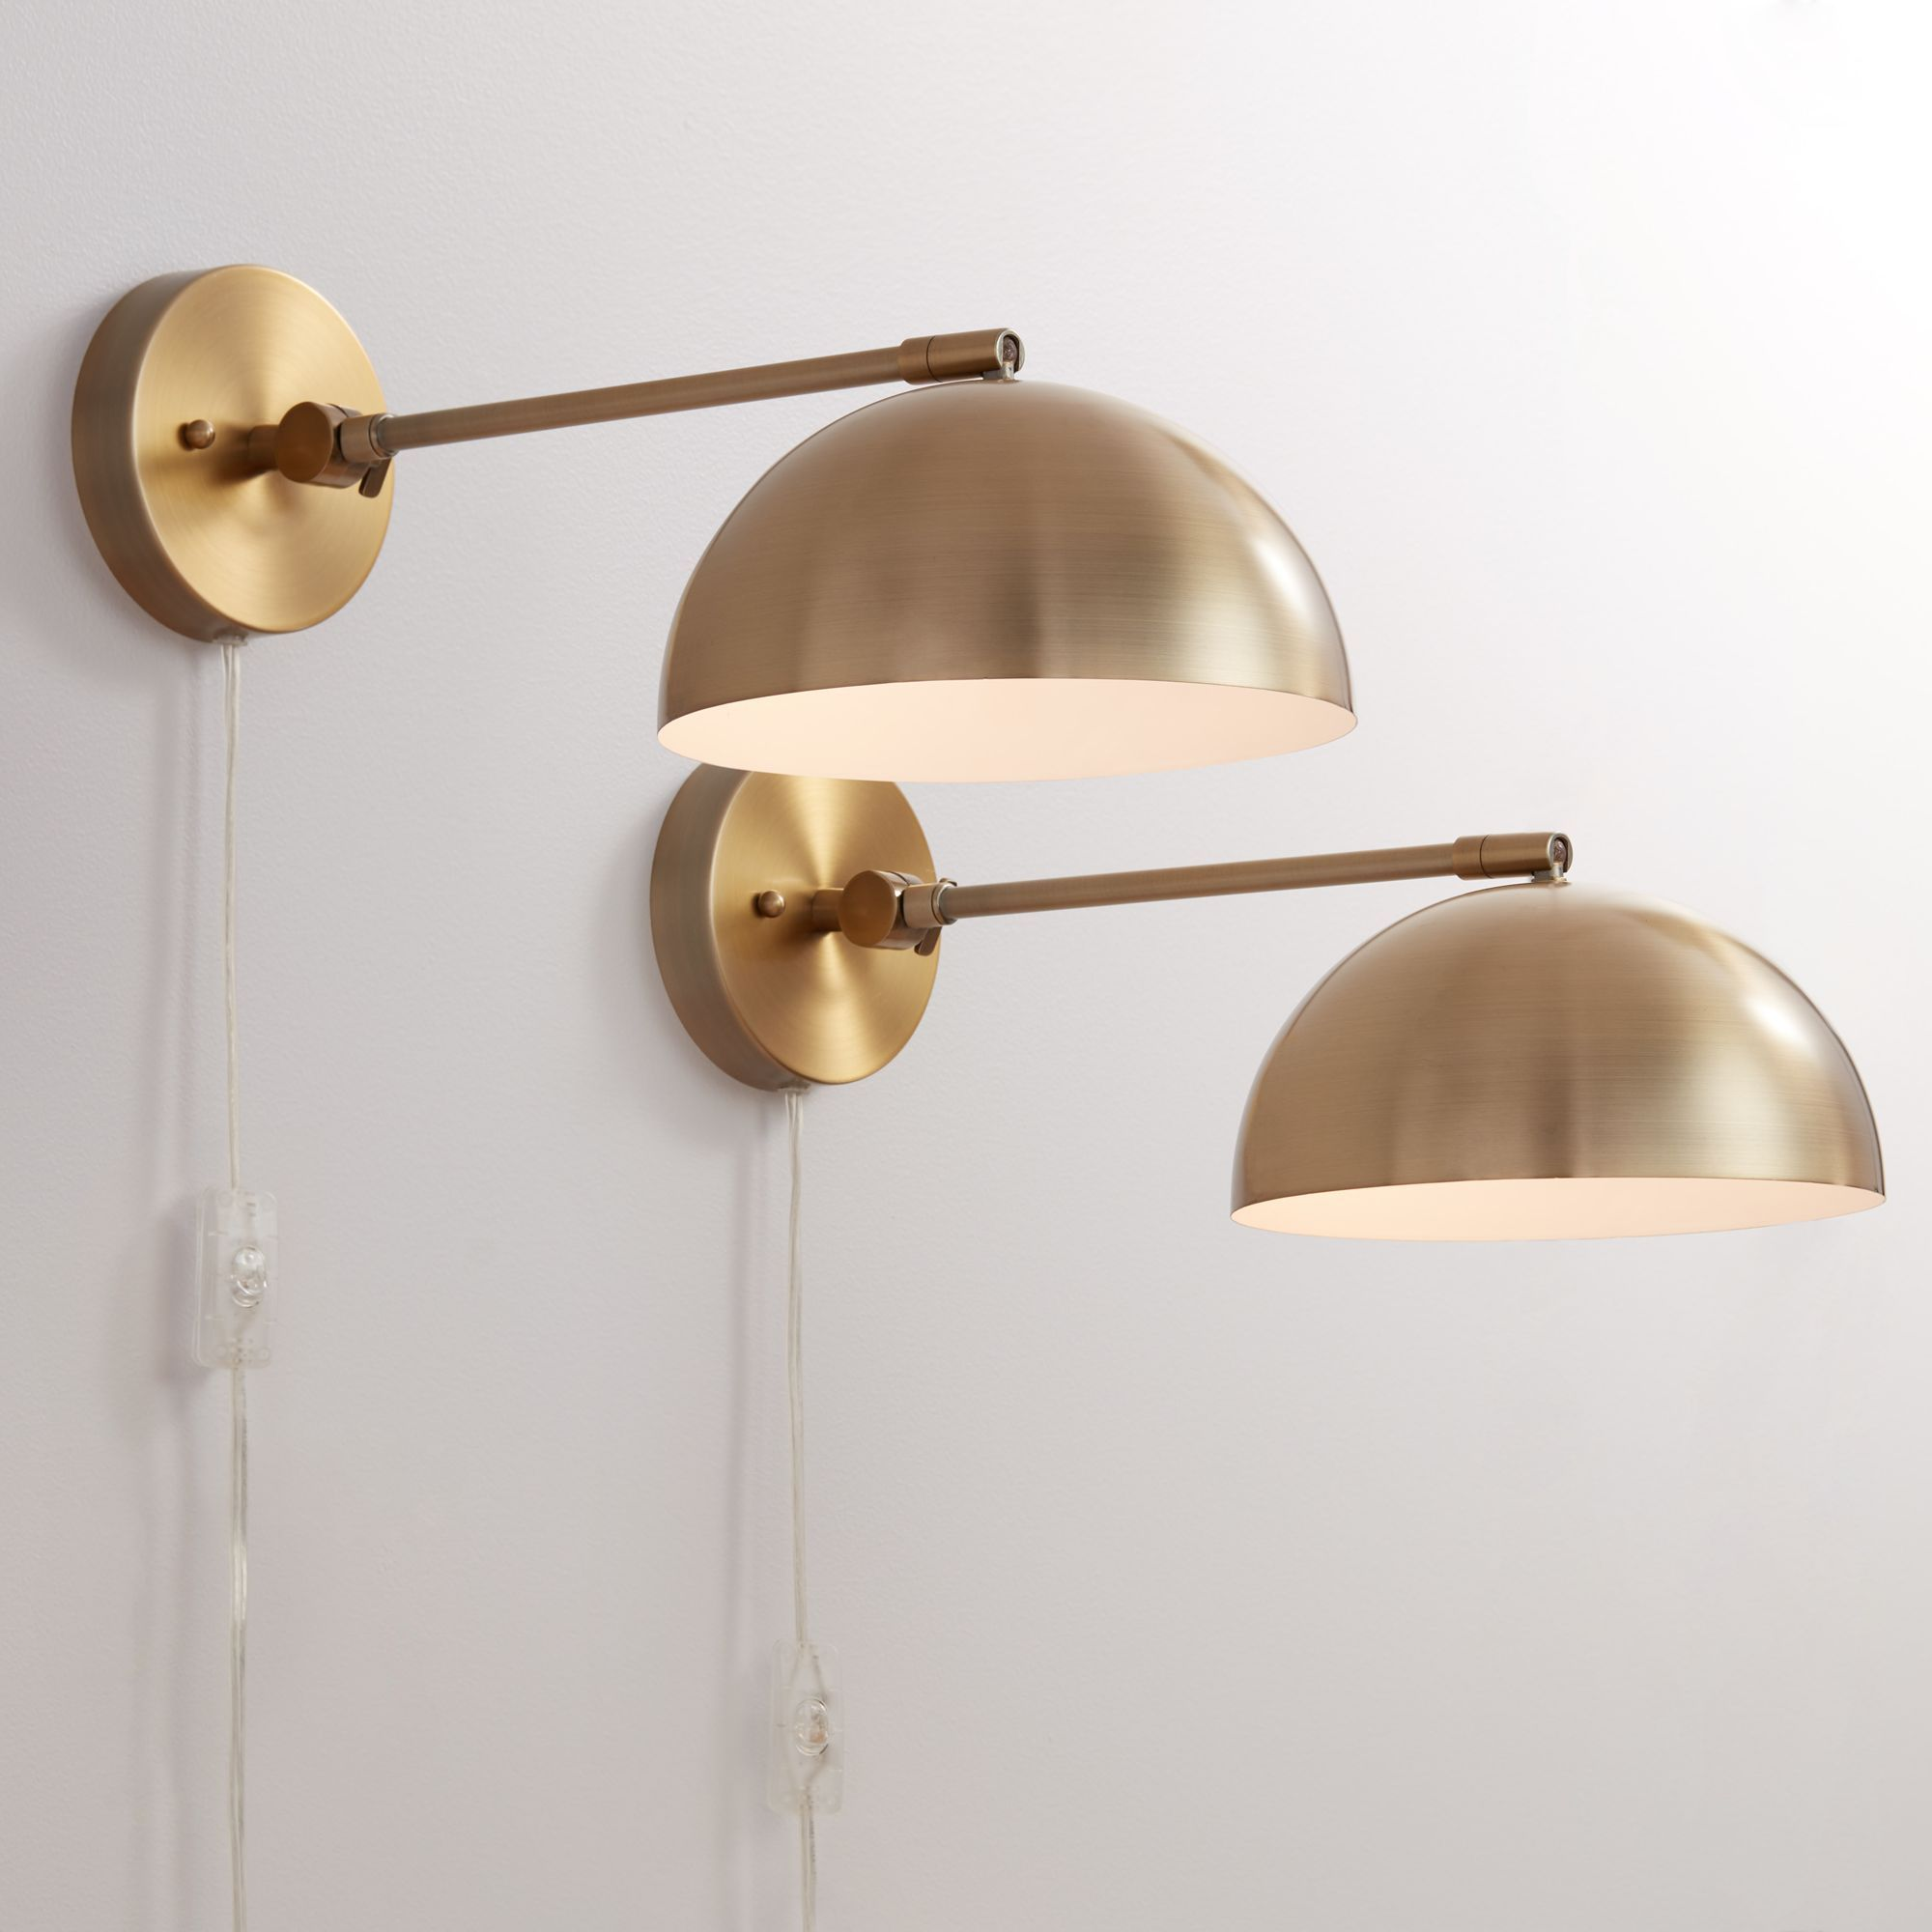 Home Wall Mounted Lamps Plug In Wall Lamp Wall Lights